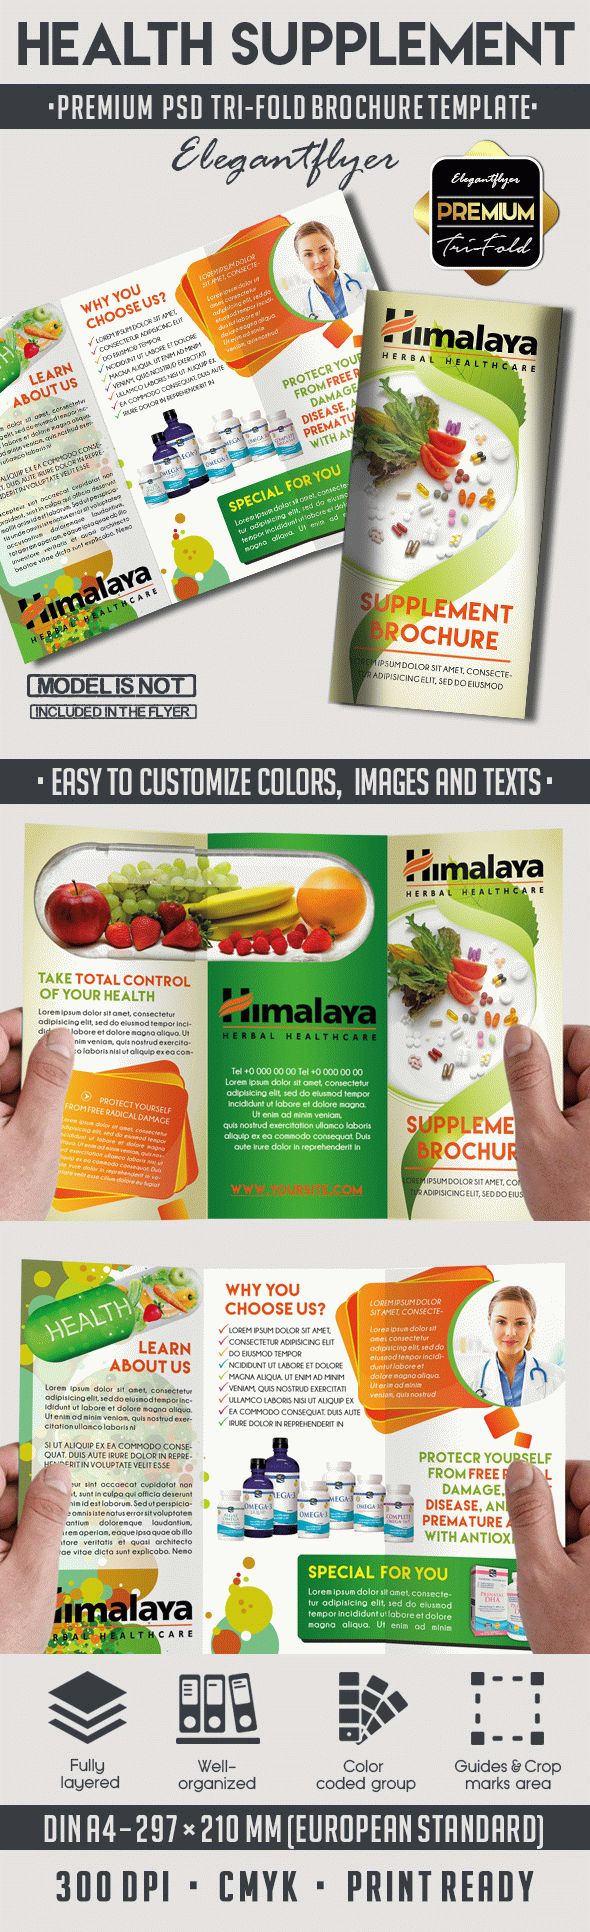 Health Supplement Premium TriFold PSD Brochure Template by – Health Brochure Template